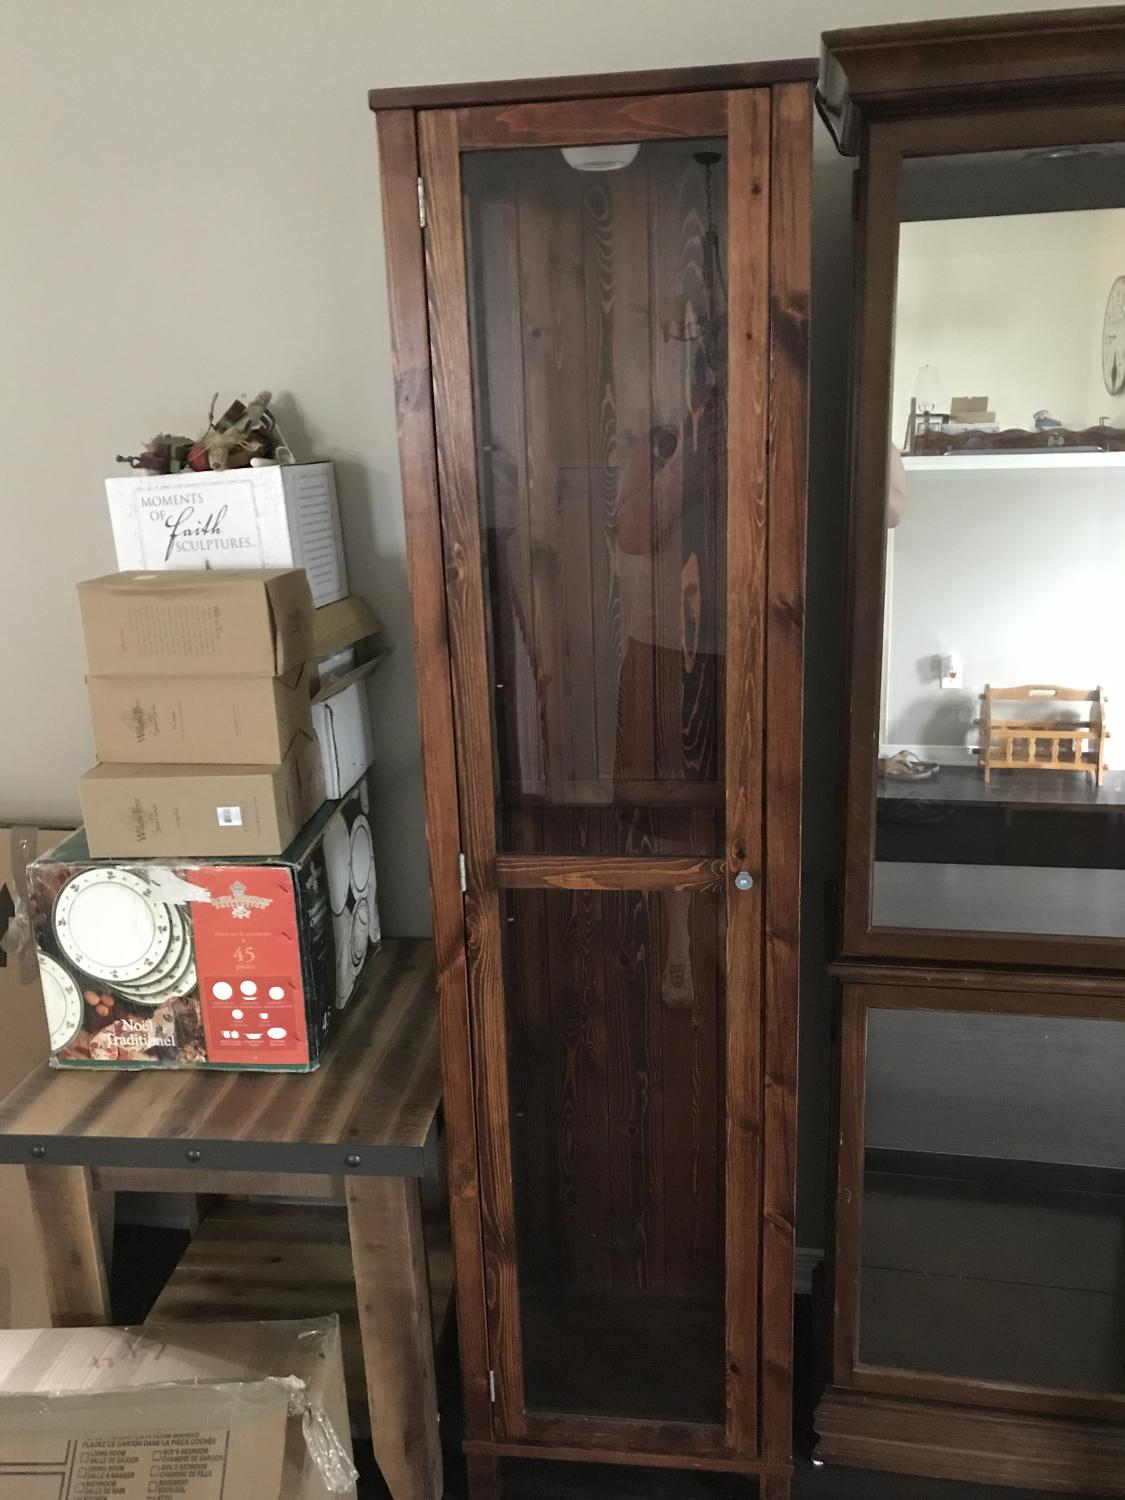 Best Ikea Curio Cabinet For Sale In Kingston Ontario For 2021